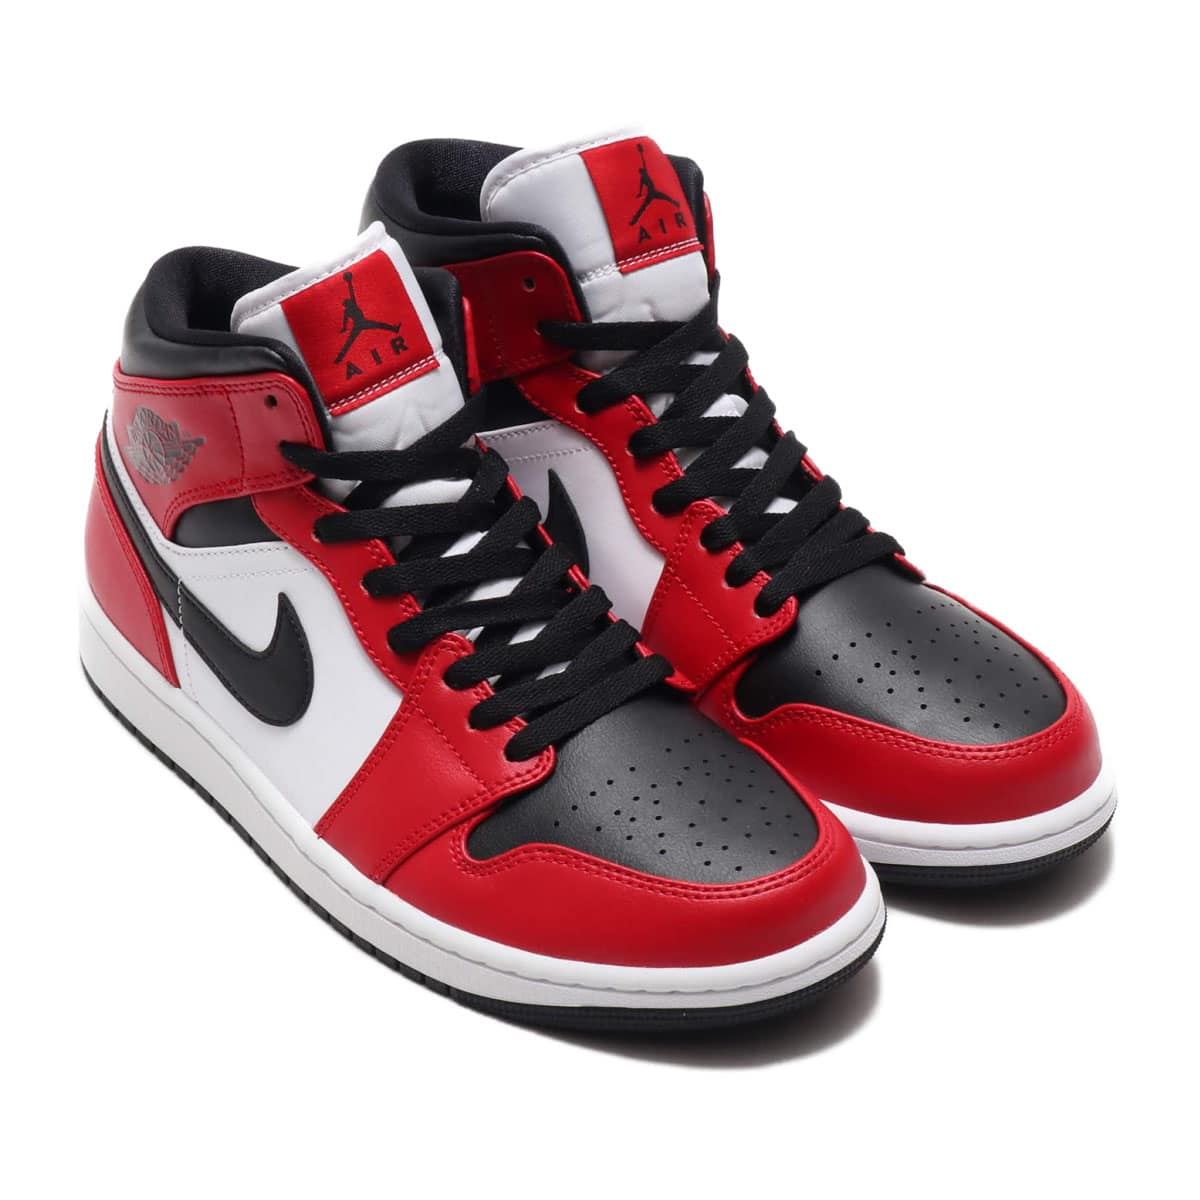 JORDAN BRAND AIR JORDAN 1 MID BLACK/BLACK-GYM RED 20SU-S_photo_large